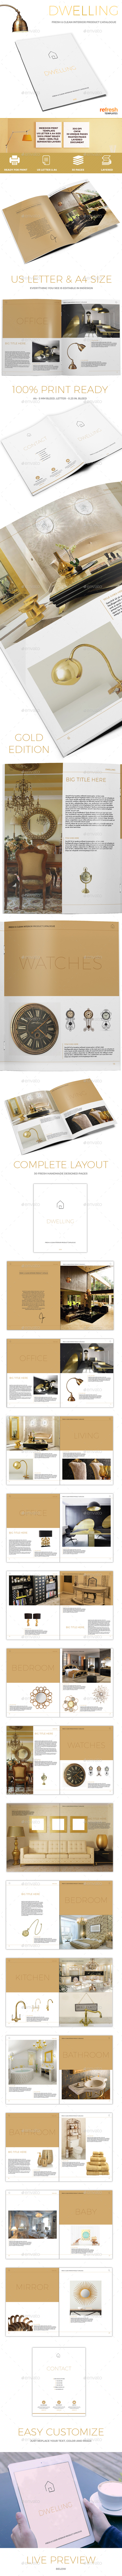 Dwelling - Clean Interior Catalogue - Catalogs Brochures